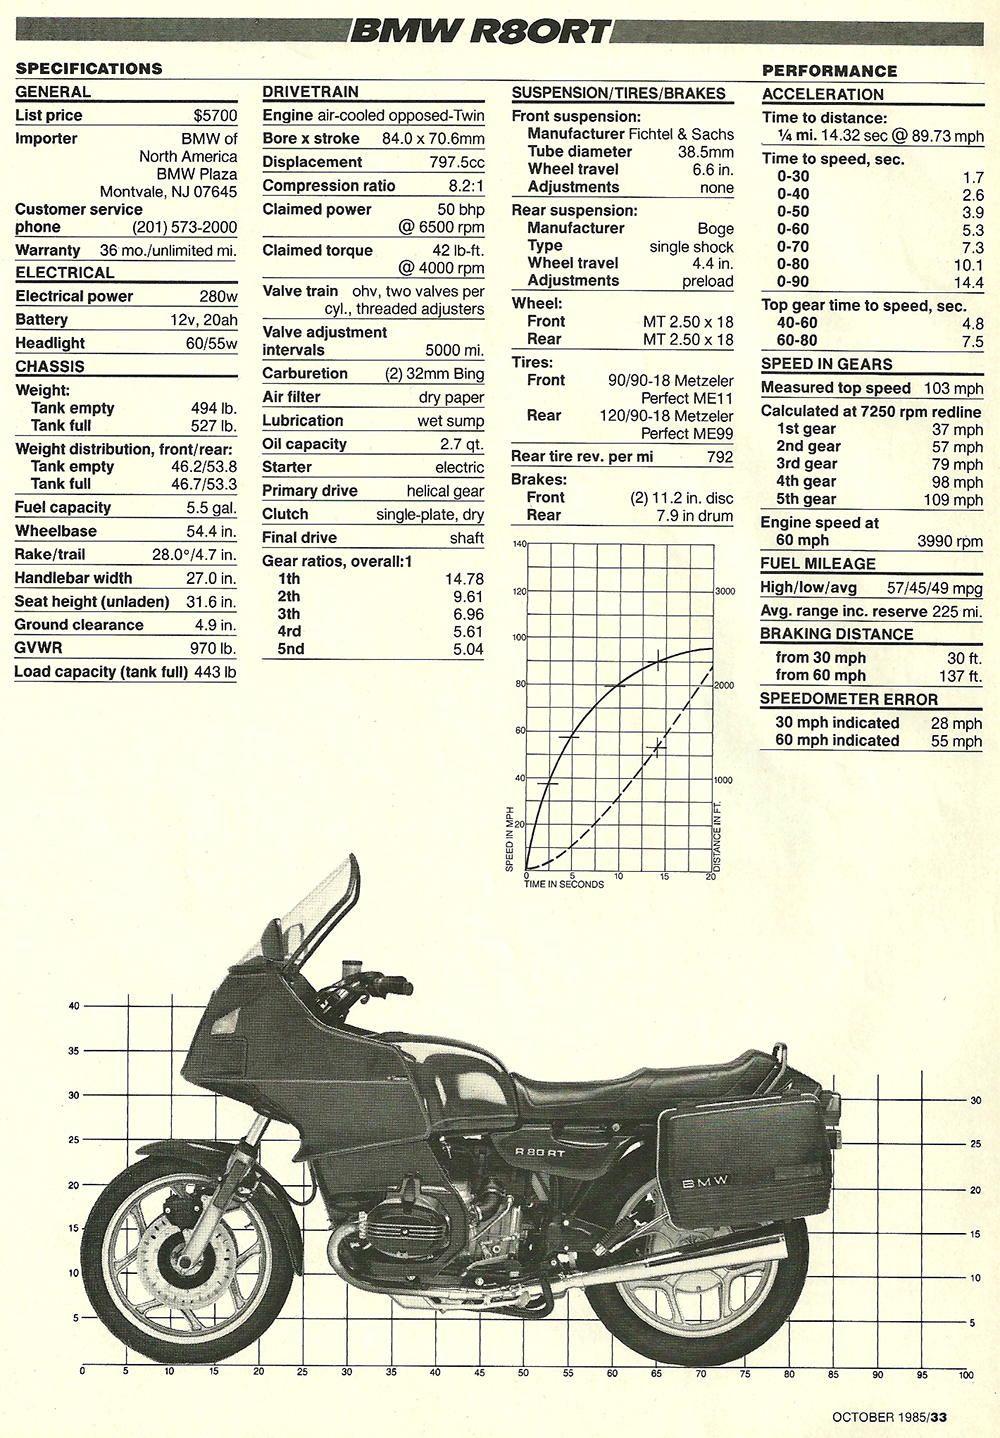 1985 BMW R80T road test 06.jpg